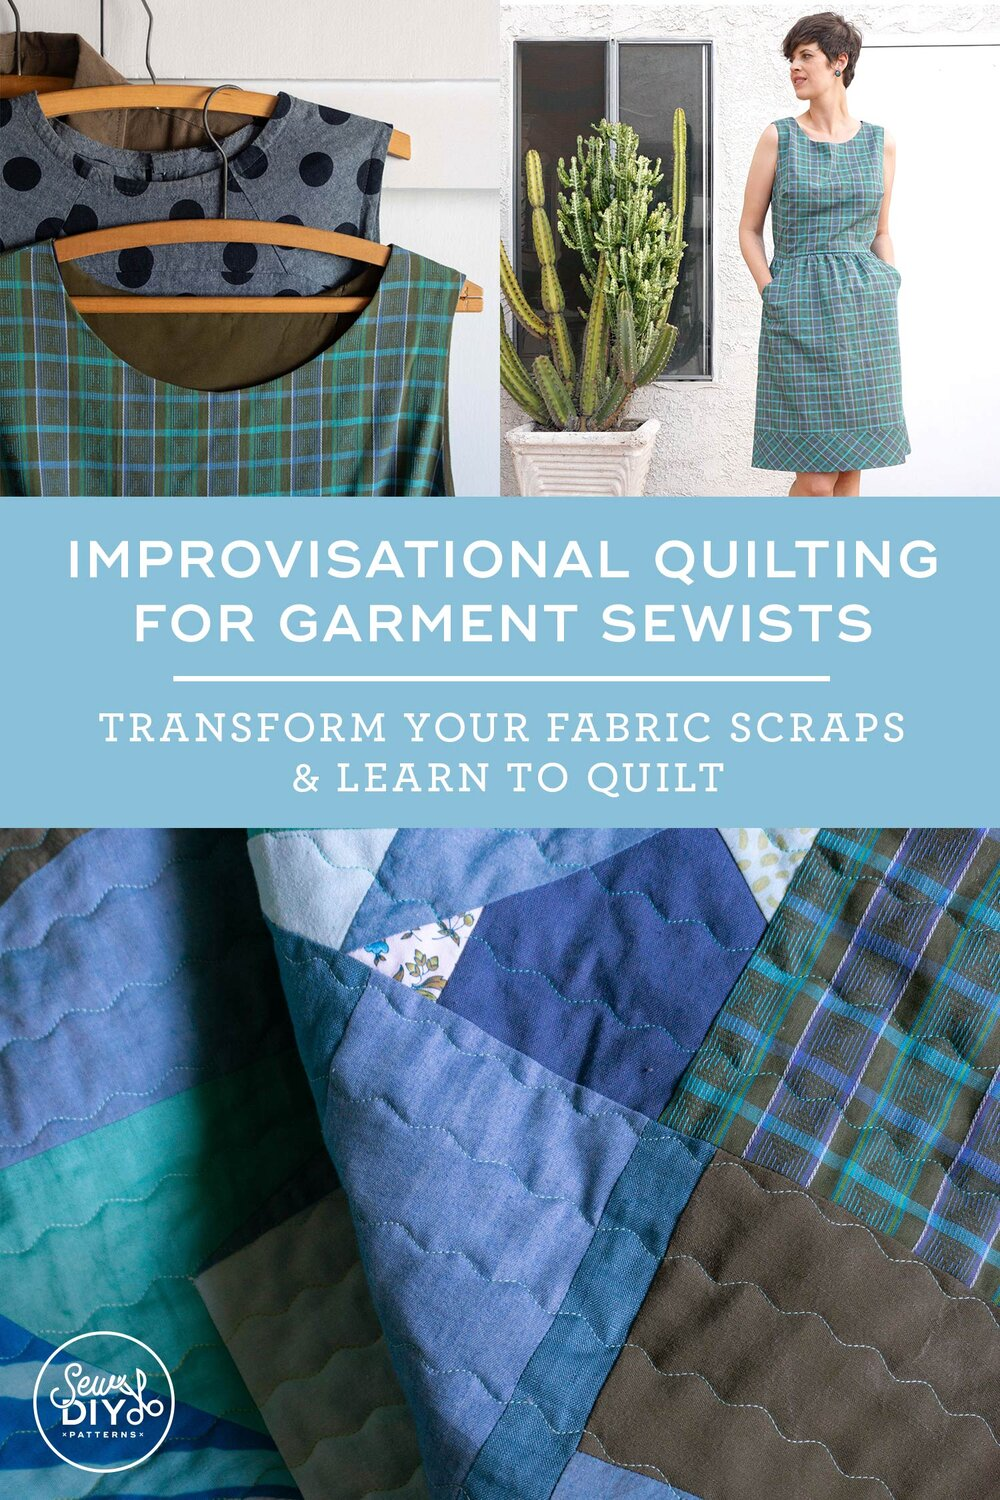 Improvisational Quilting for Garment Sewists, a new e-course from Sew DIY. Learn how to use your scrap fabric to make beautiful and useful improvisational quilts.